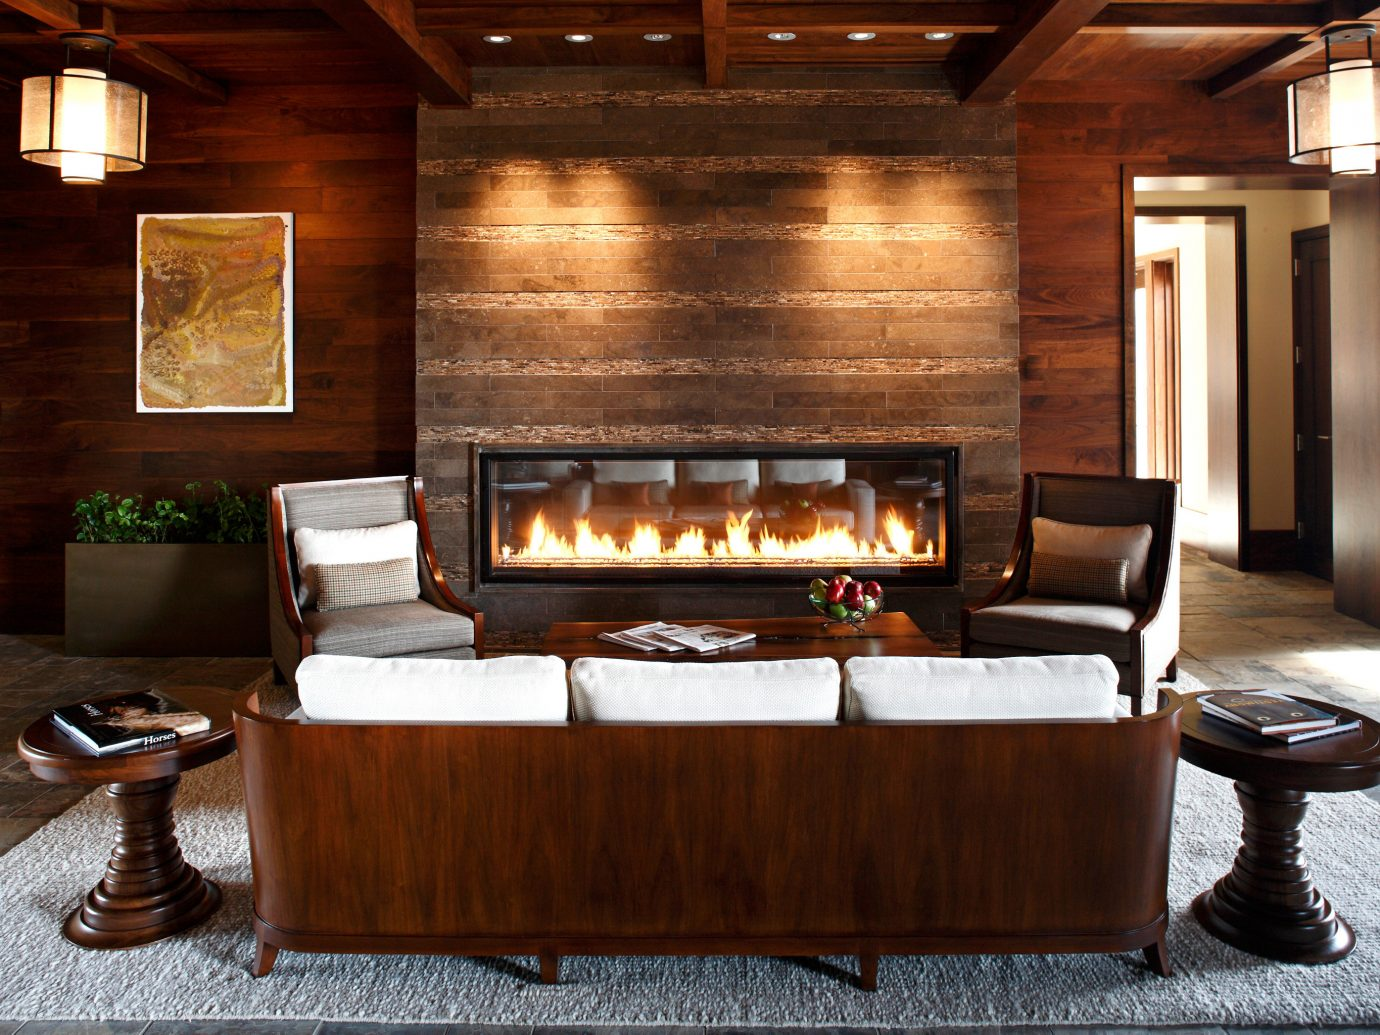 Fireplace Hotels Living Lounge Modern Romantic indoor floor man made object hearth room living room hardwood ceiling wood wooden home interior design lighting furniture cabinetry estate wood flooring Design cuisine cottage area stone